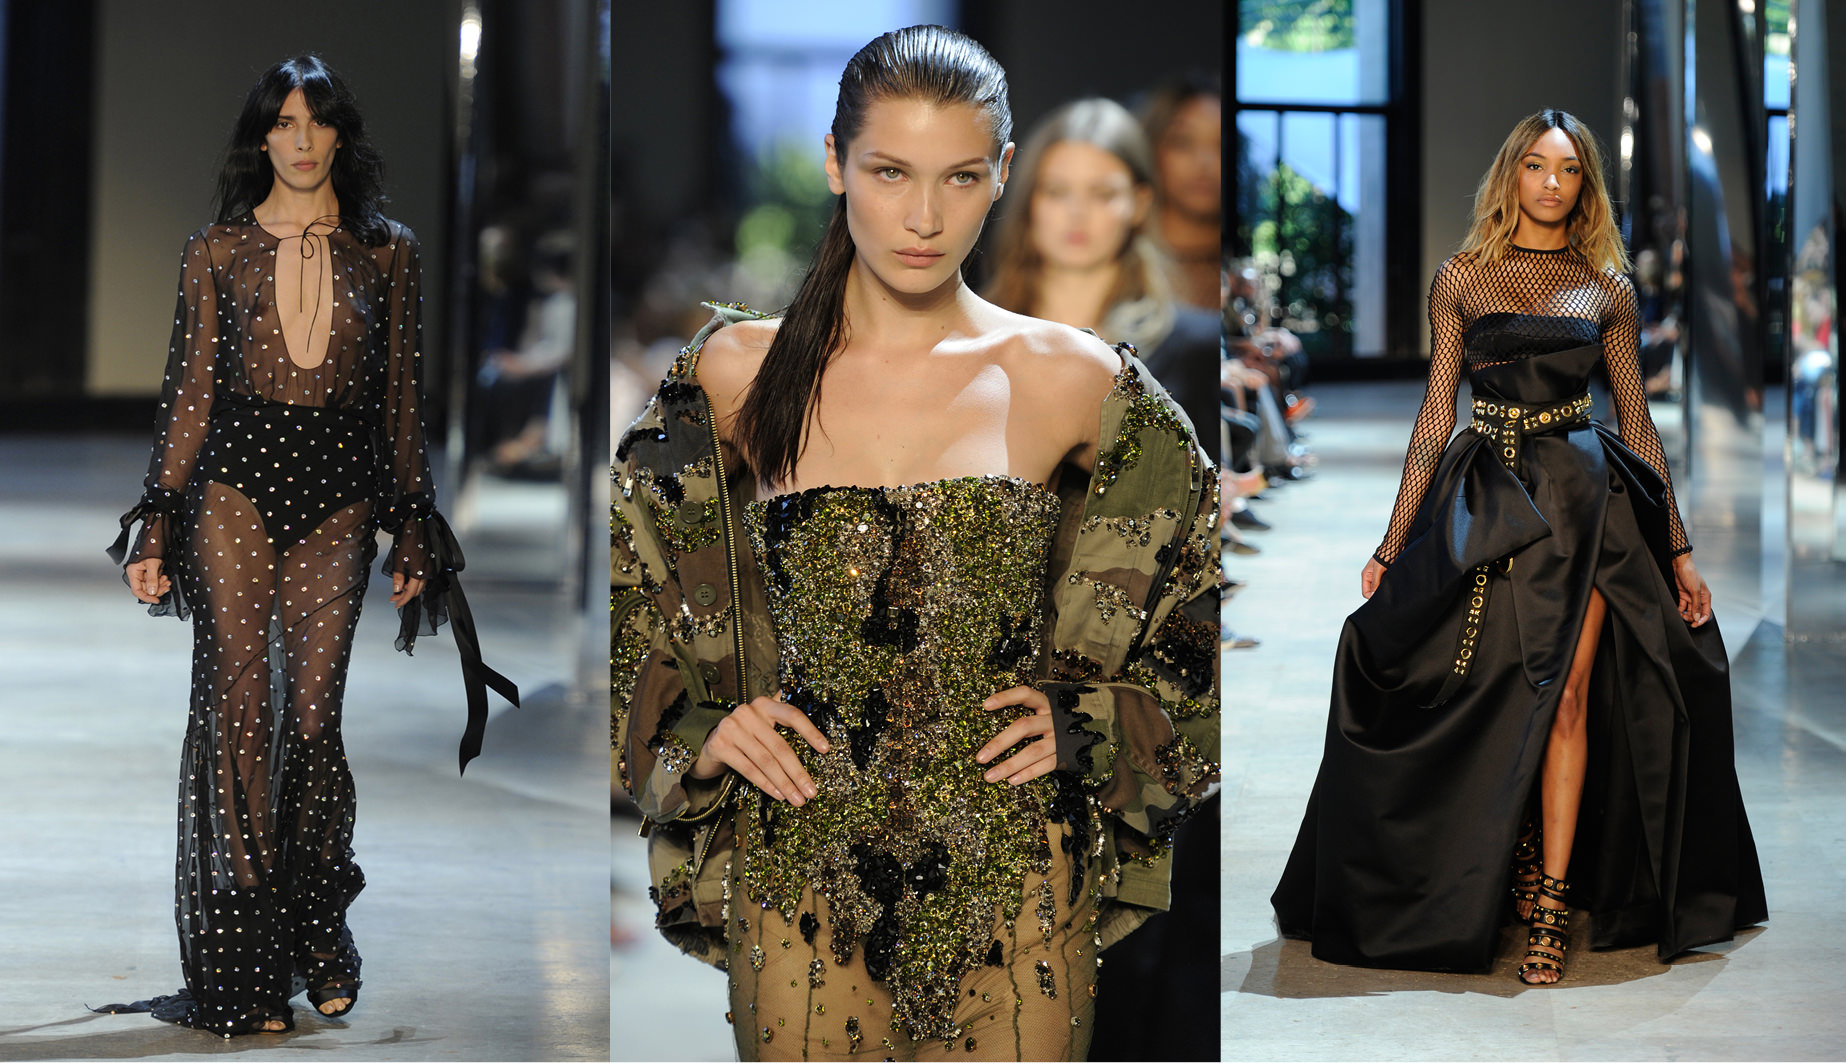 The Alexandre Vauthier fall-winter 2016-2017 haute couture show  Numéro: Bella Hadid,Jourdan Dunnand Cindy Bruna all walked for you this season…  Alexandre Vauthier:I'm so thrilled these girls, who are dreams come true, were happy to be there. They want to take part in the show and to wear my clothes. I think they're very excited by the energy of the show, but also by what they can express here through the clothes. I really try to balance my line up of girls because it's very important to me to represent a varied slice of femininity. I want to mix up different physical genres, the sensuality of Bella Hadid and the elegance of Guinevere.